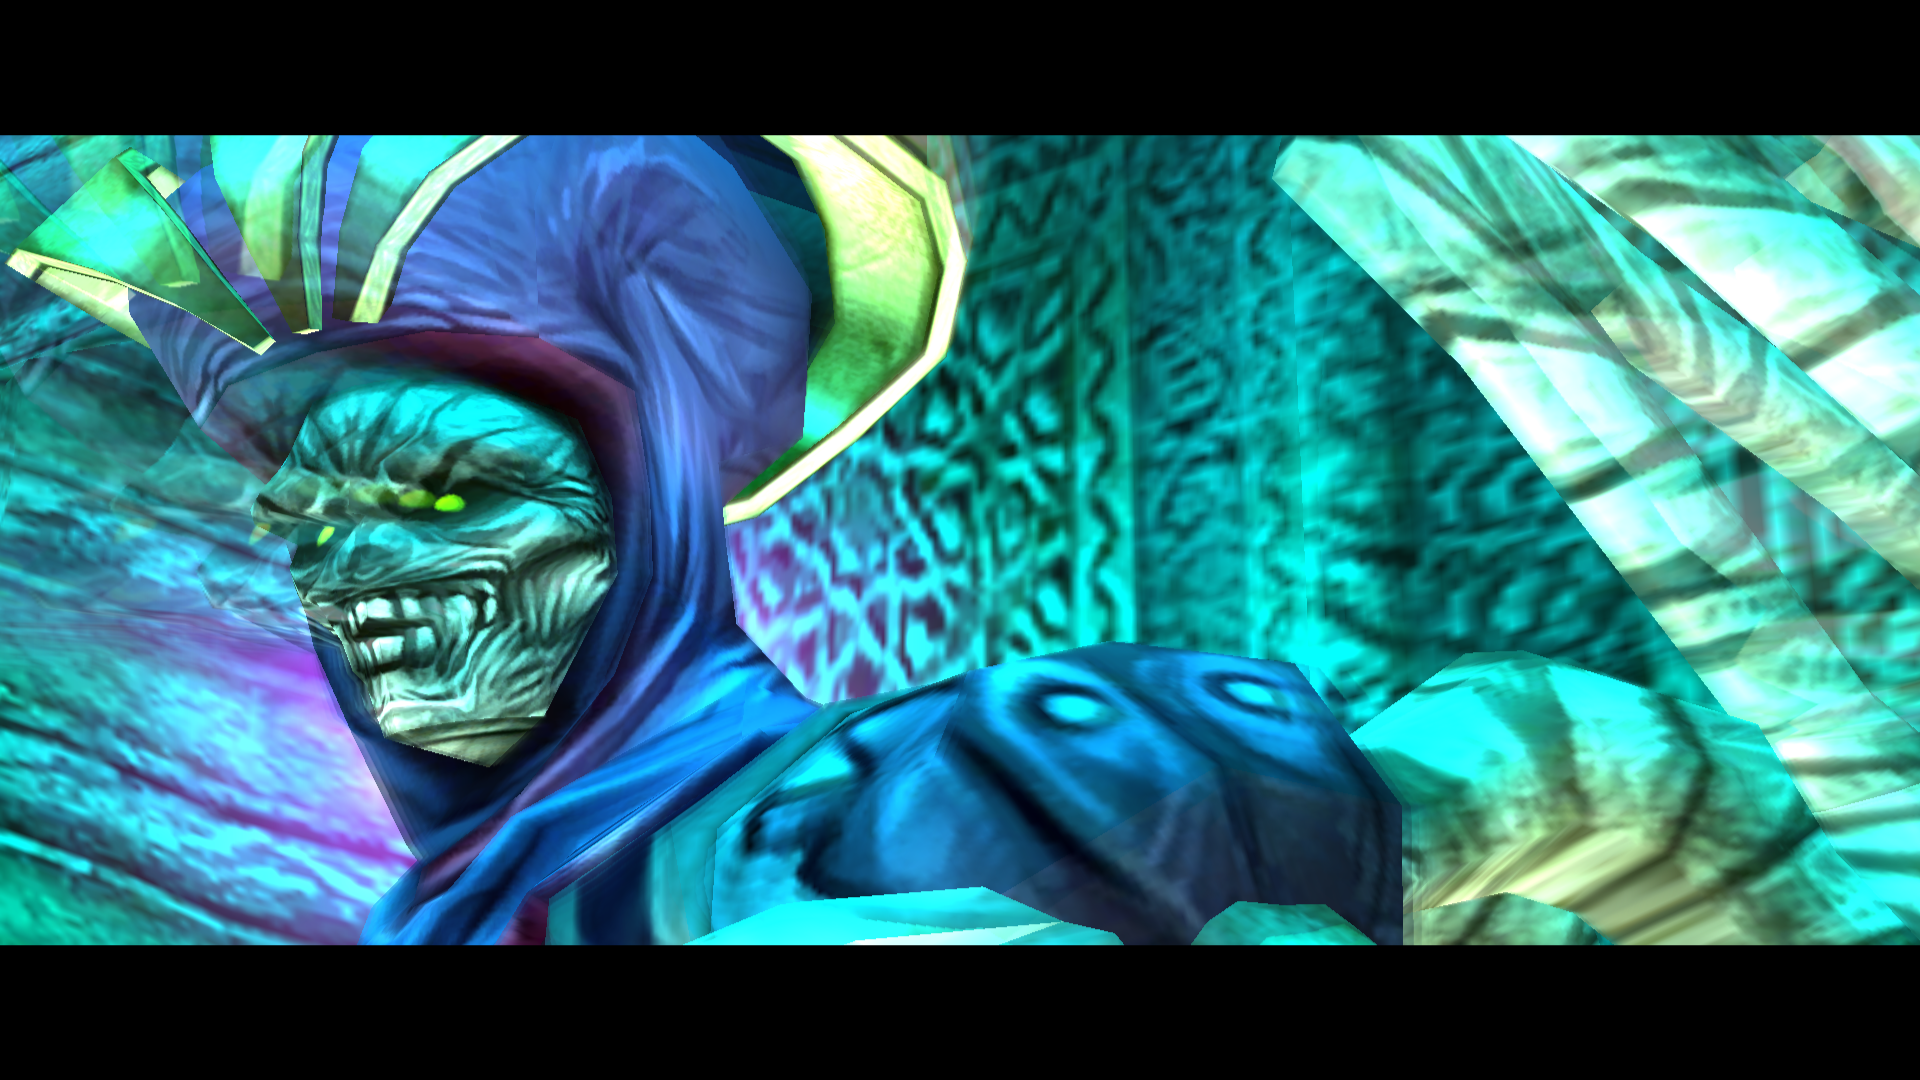 Defiance-AirForge-Cutscene-Dimension-007.png